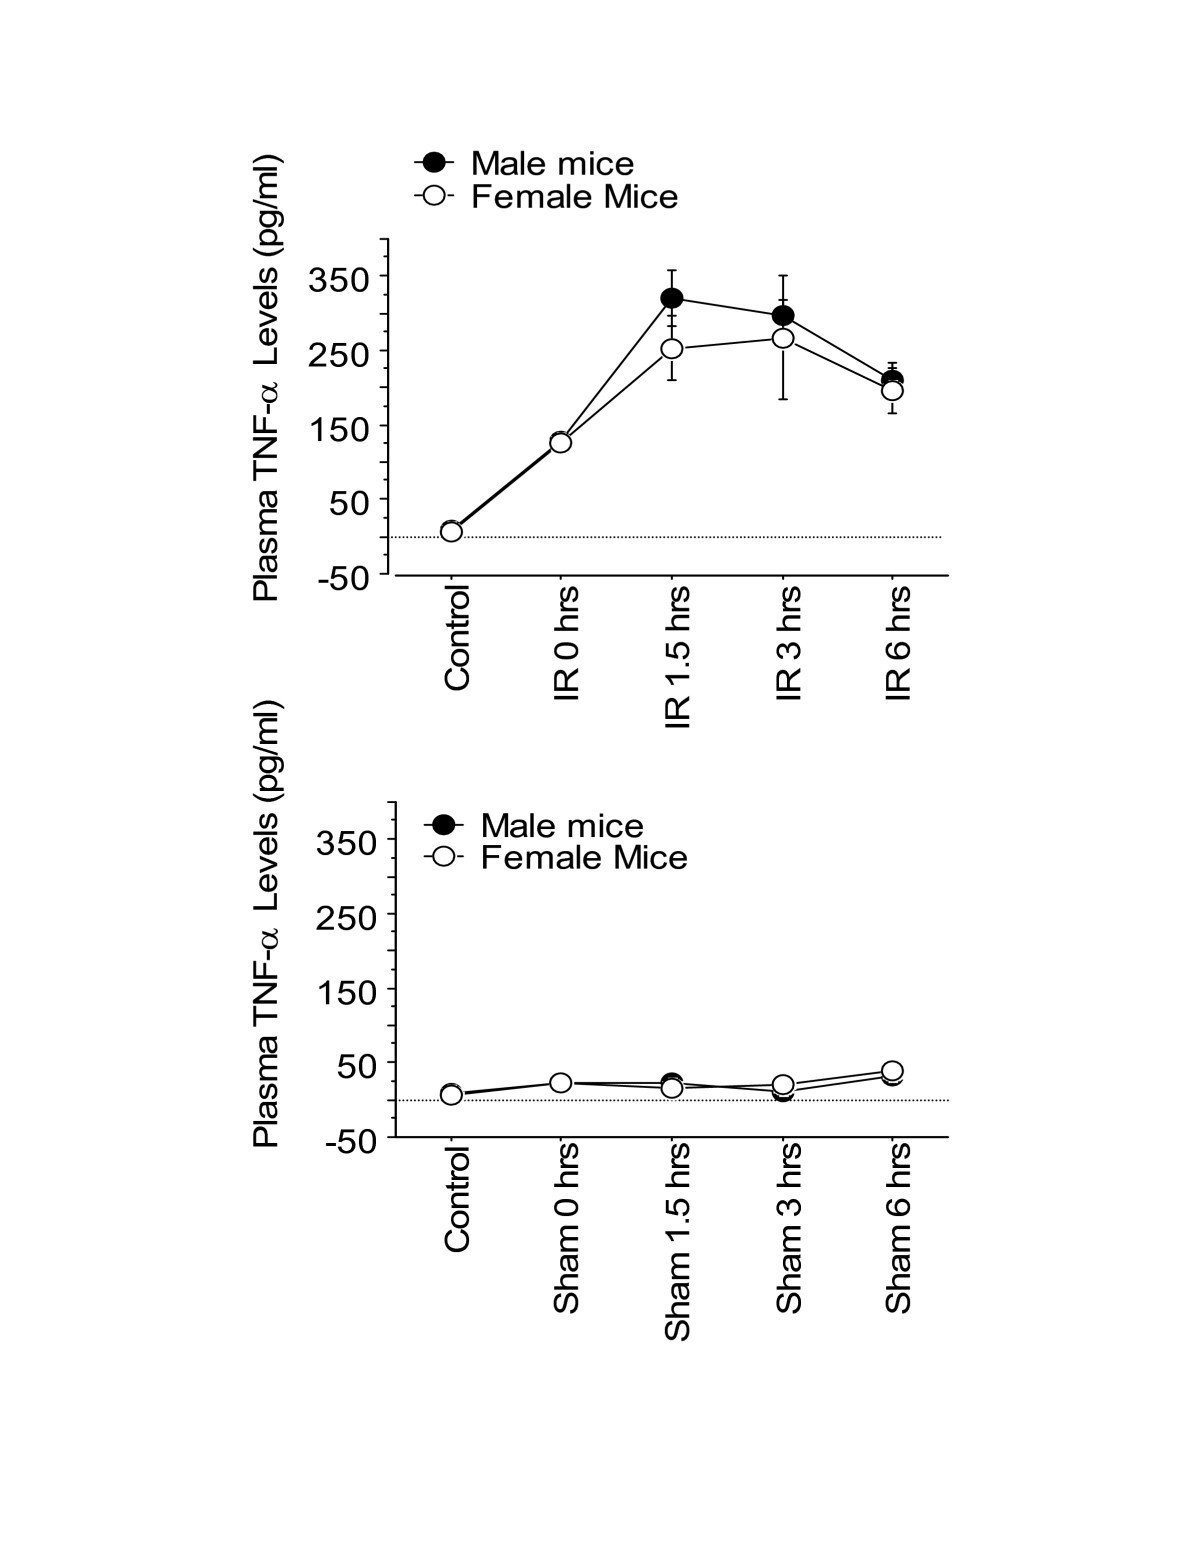 Sex Differences In Inflammatory Cytokine Production In Hepatic